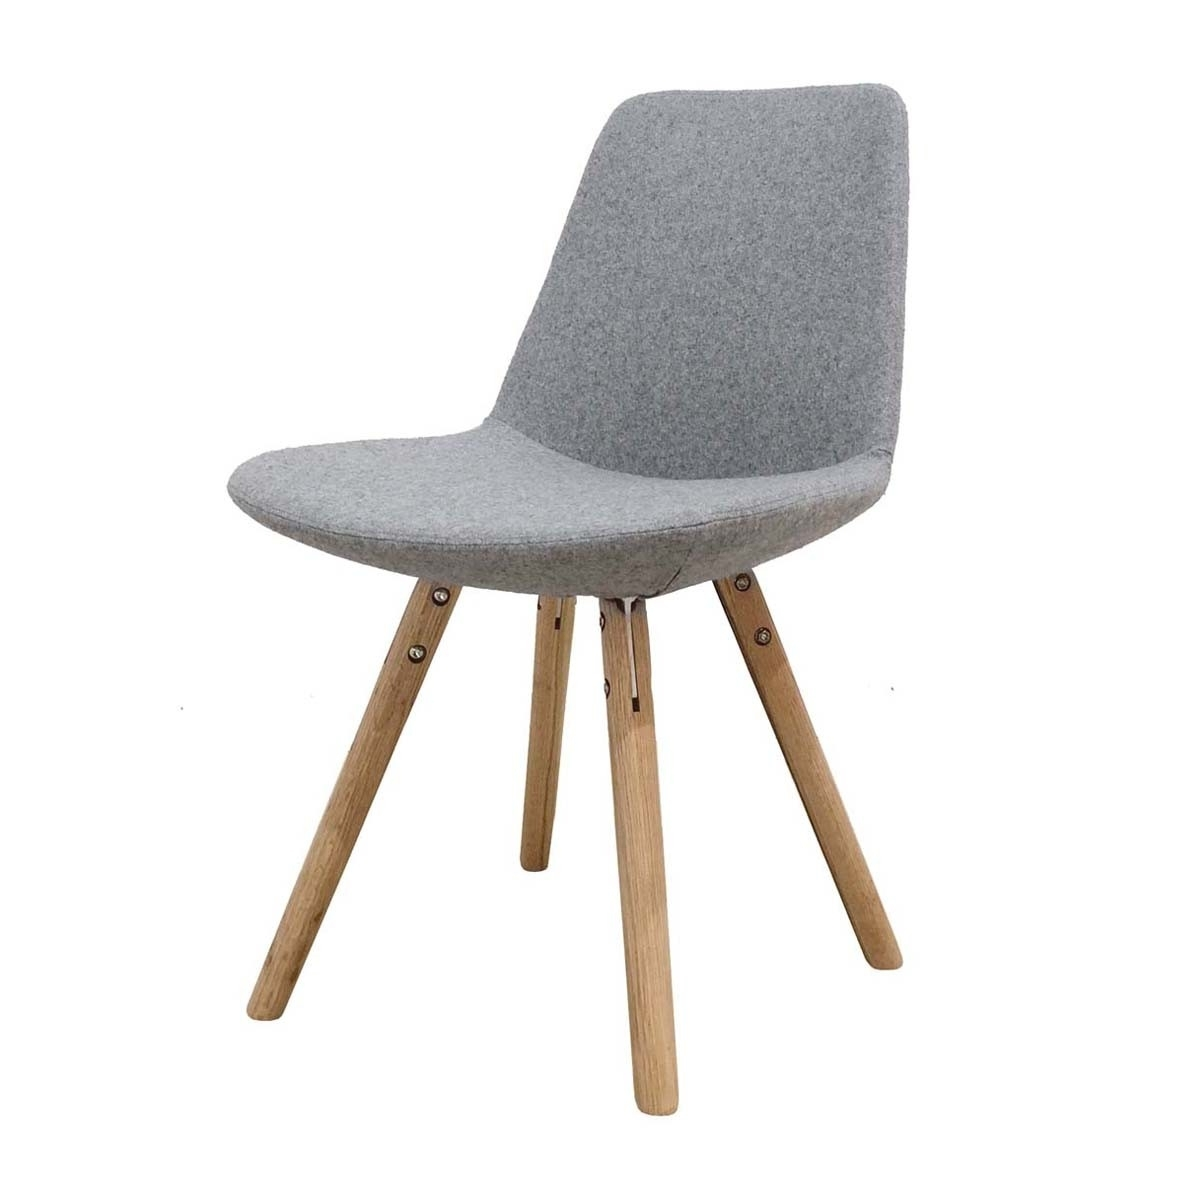 Best And Newest Grey Dining Chairs Regarding Life Interiors – Parker Wooden Dining Chair (Oak, Grey) – Modern (View 12 of 20)